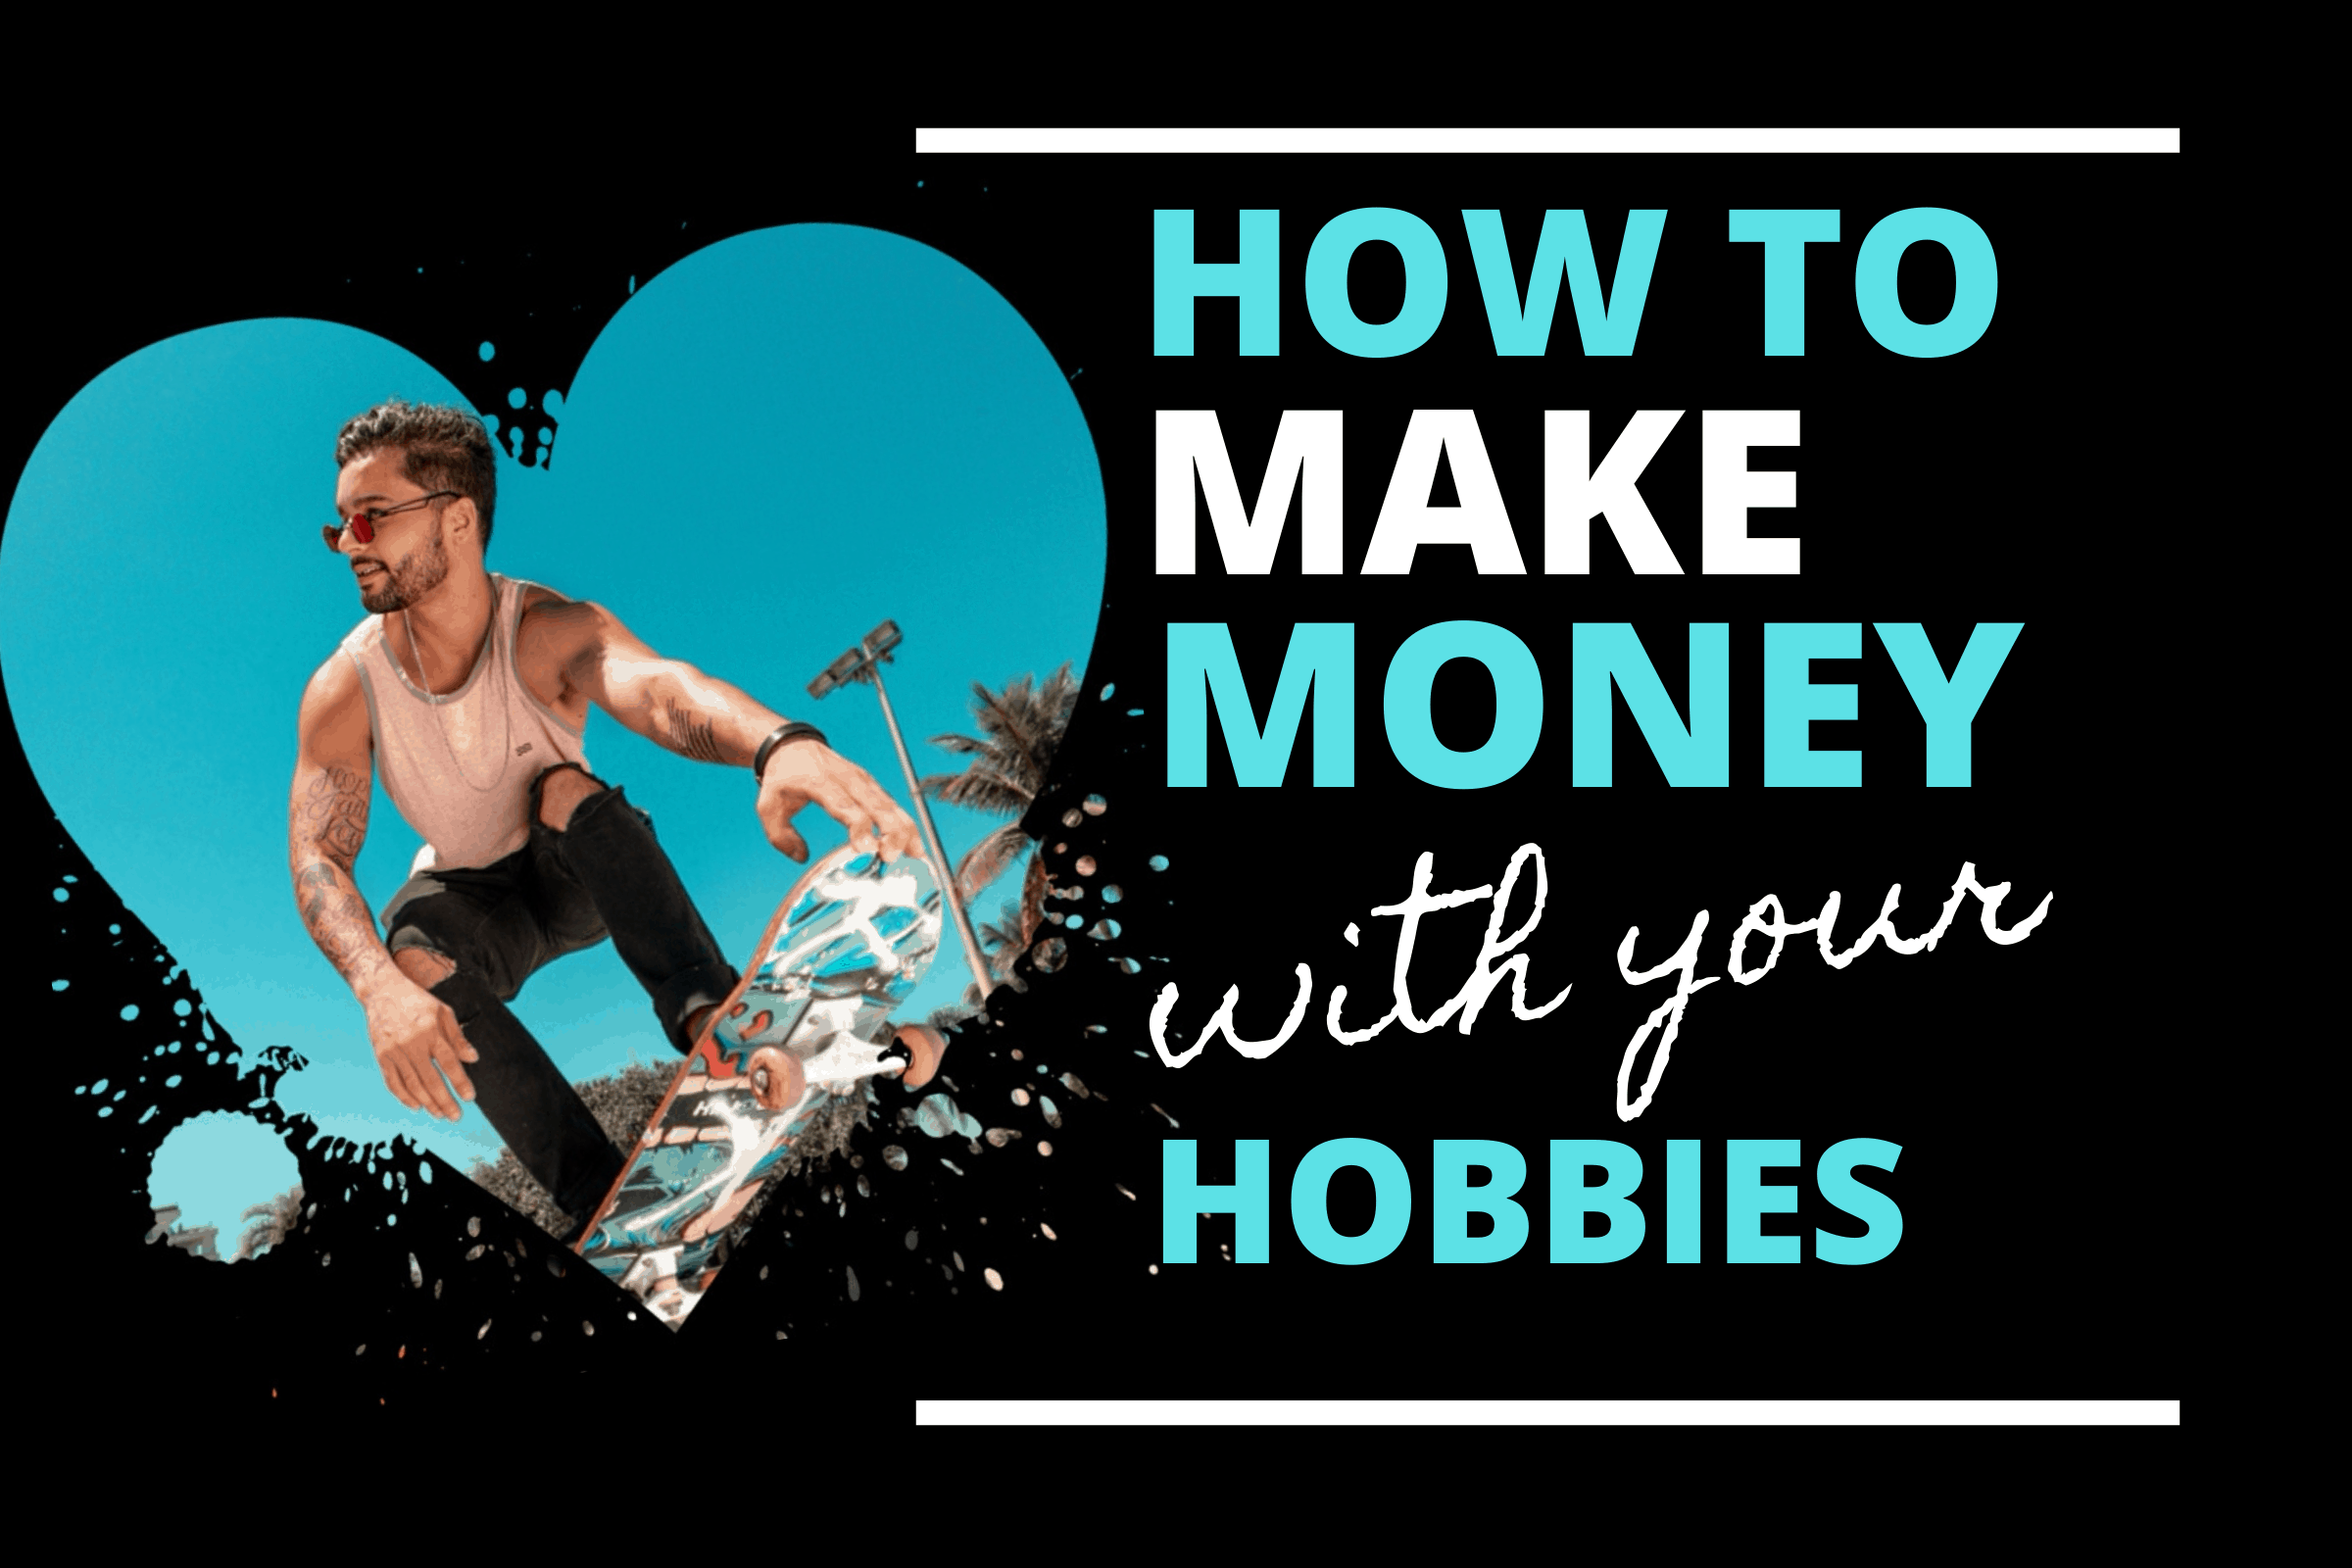 How-to-make-money-with-your-hobbies